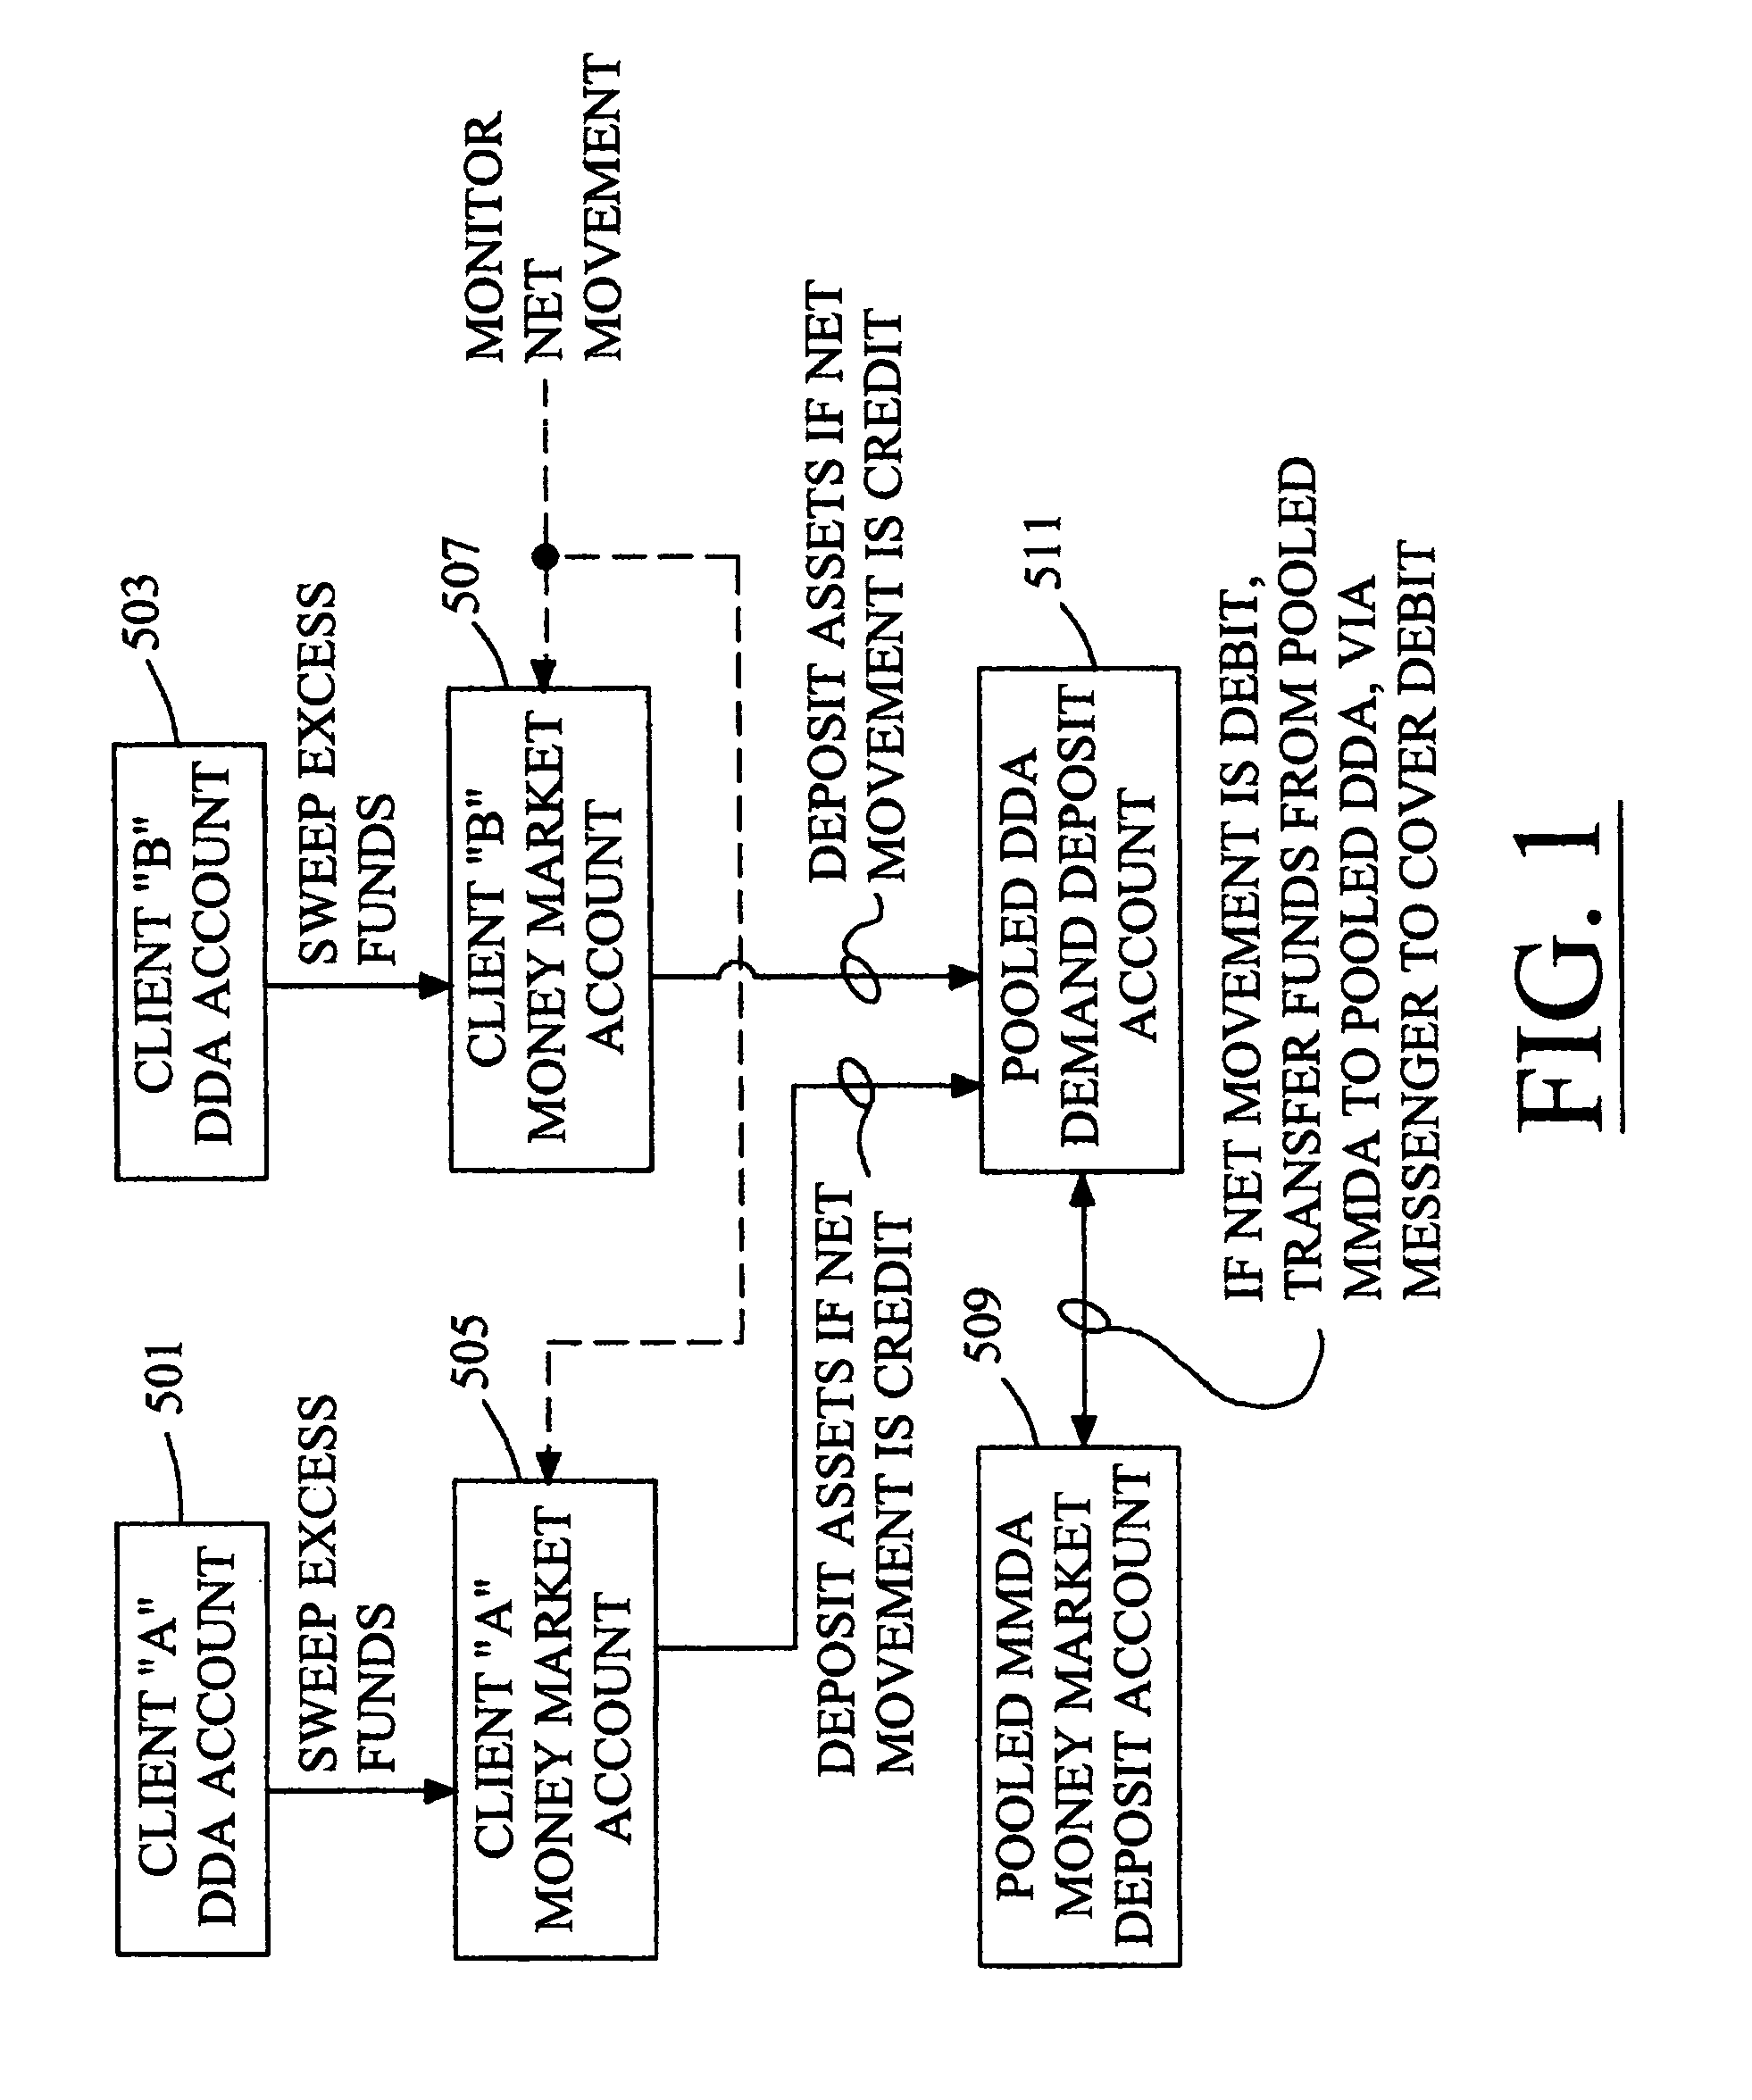 Patent Us7933821 Systems And Methods For Administering Return Wiring Money Cibc Drawing